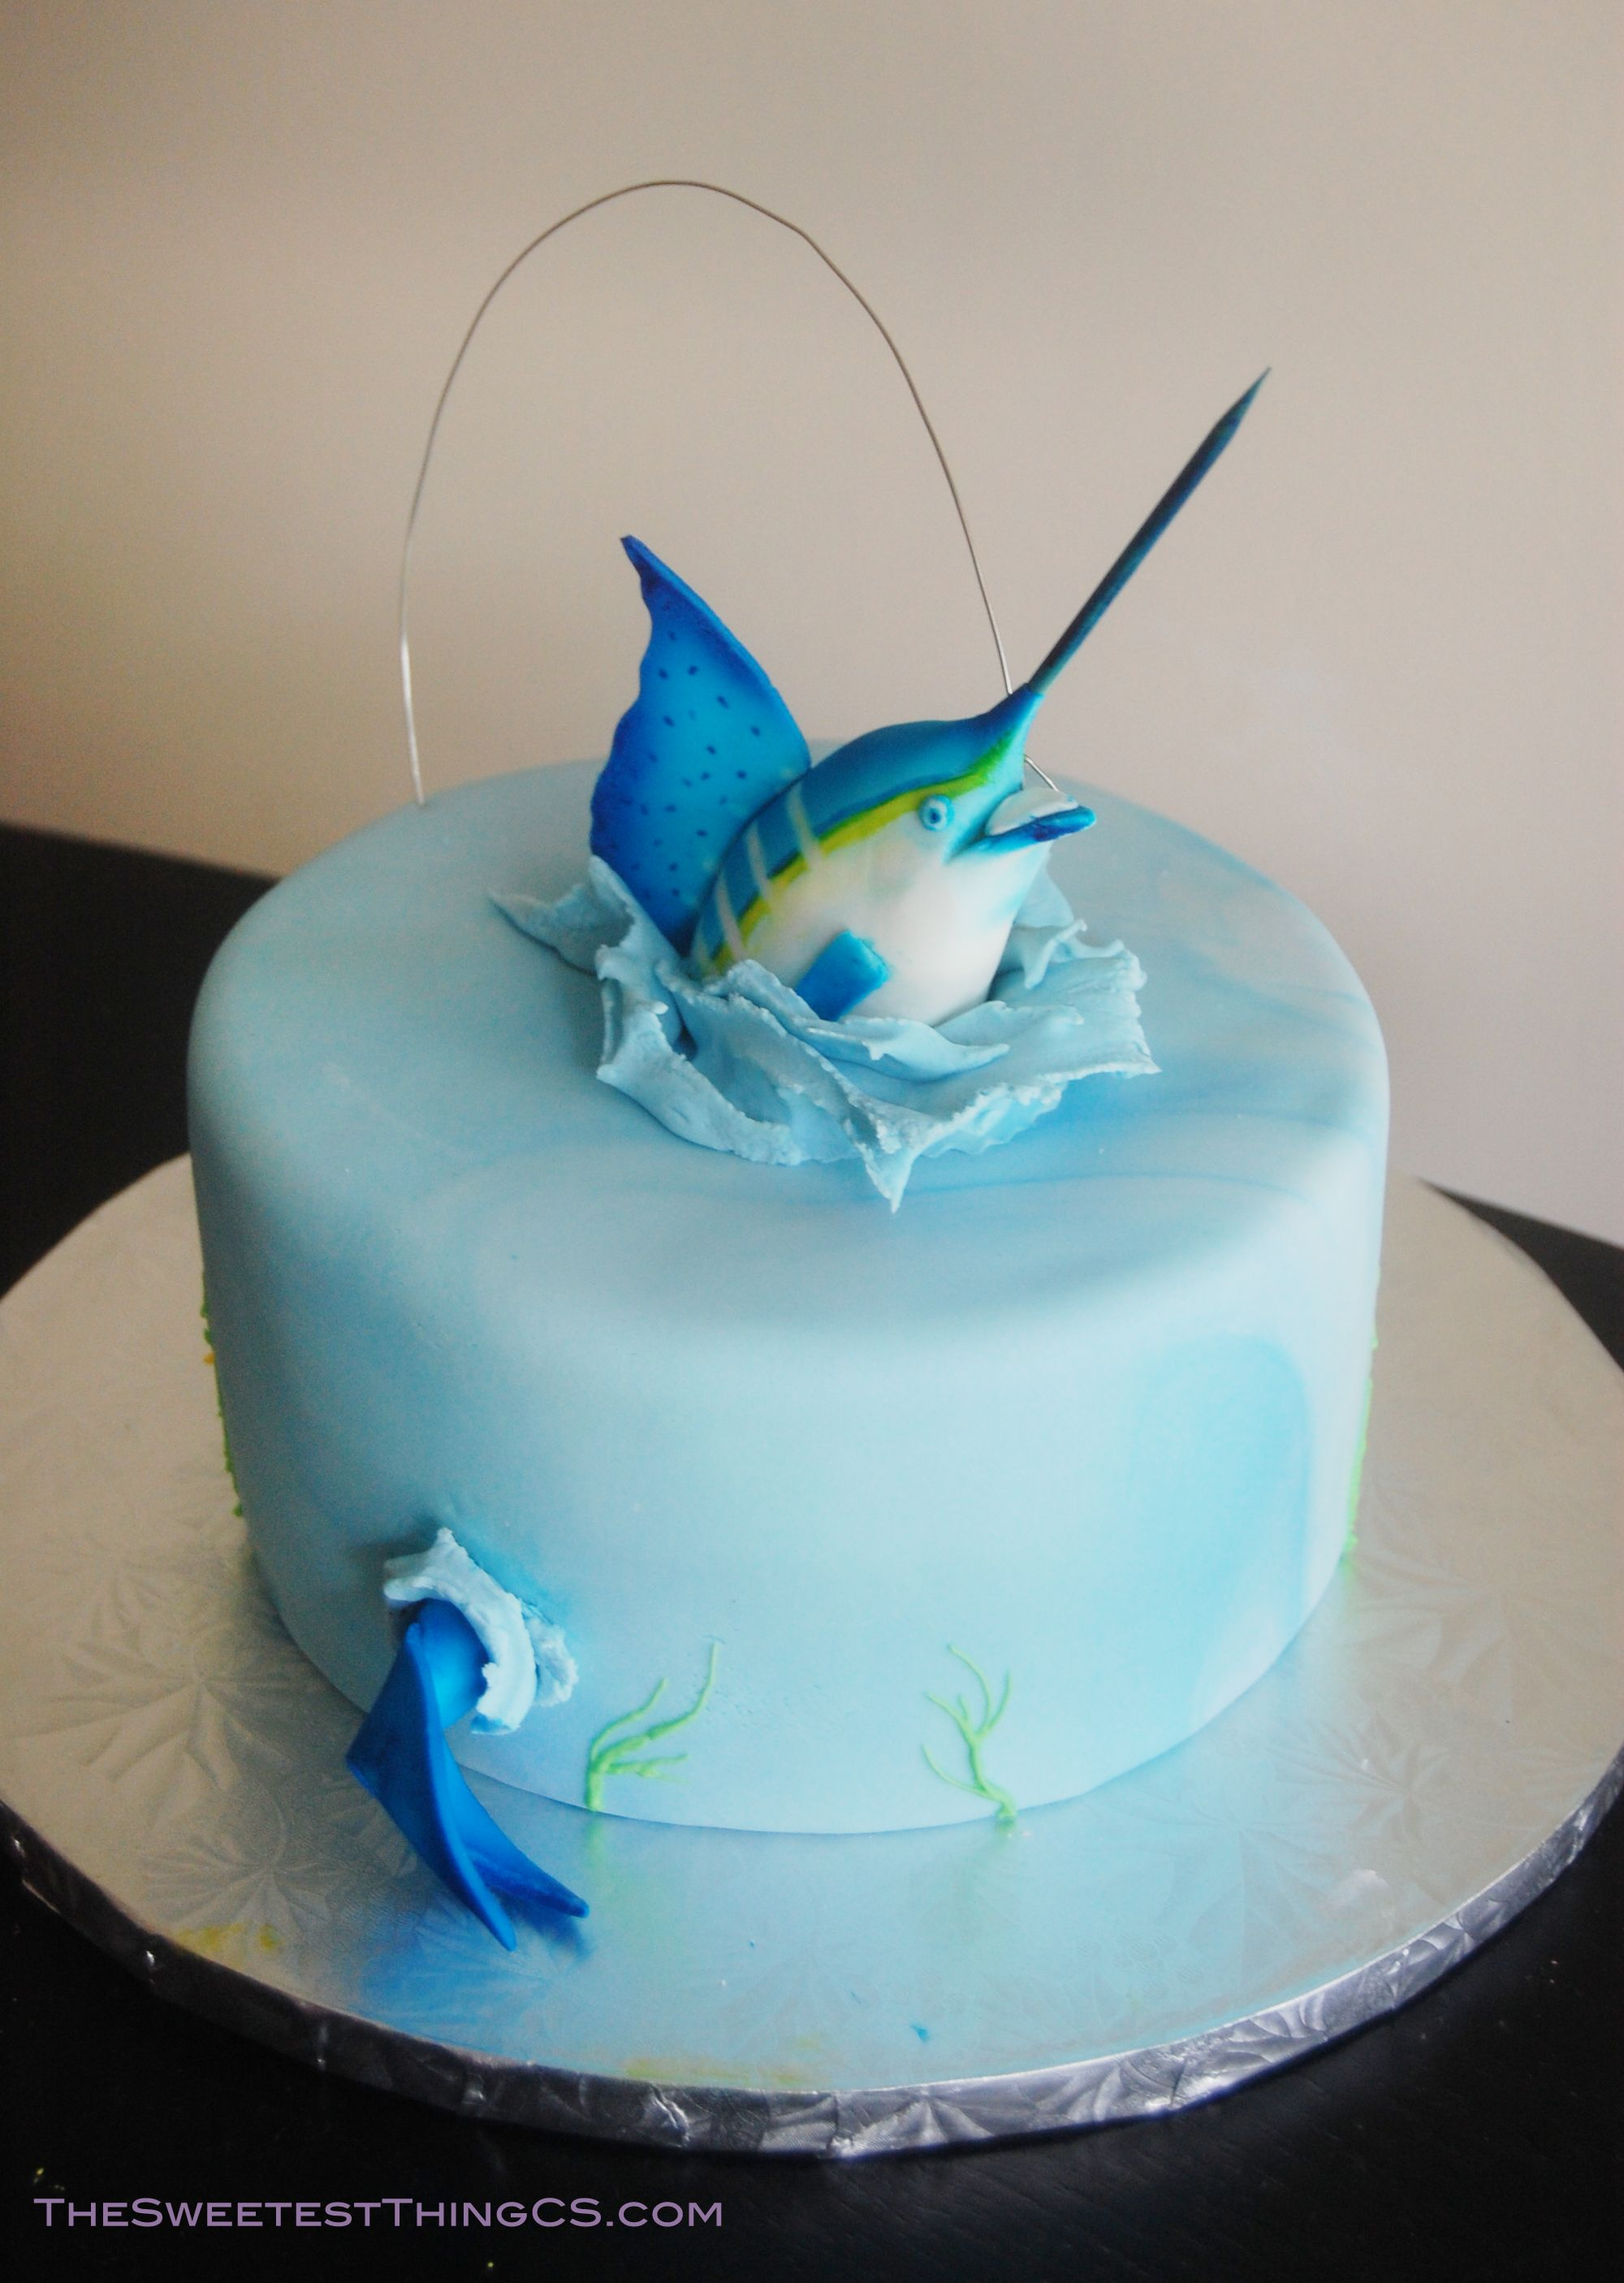 Marling Fishing Birthday Cake - Fisherman Cake! Marble ...